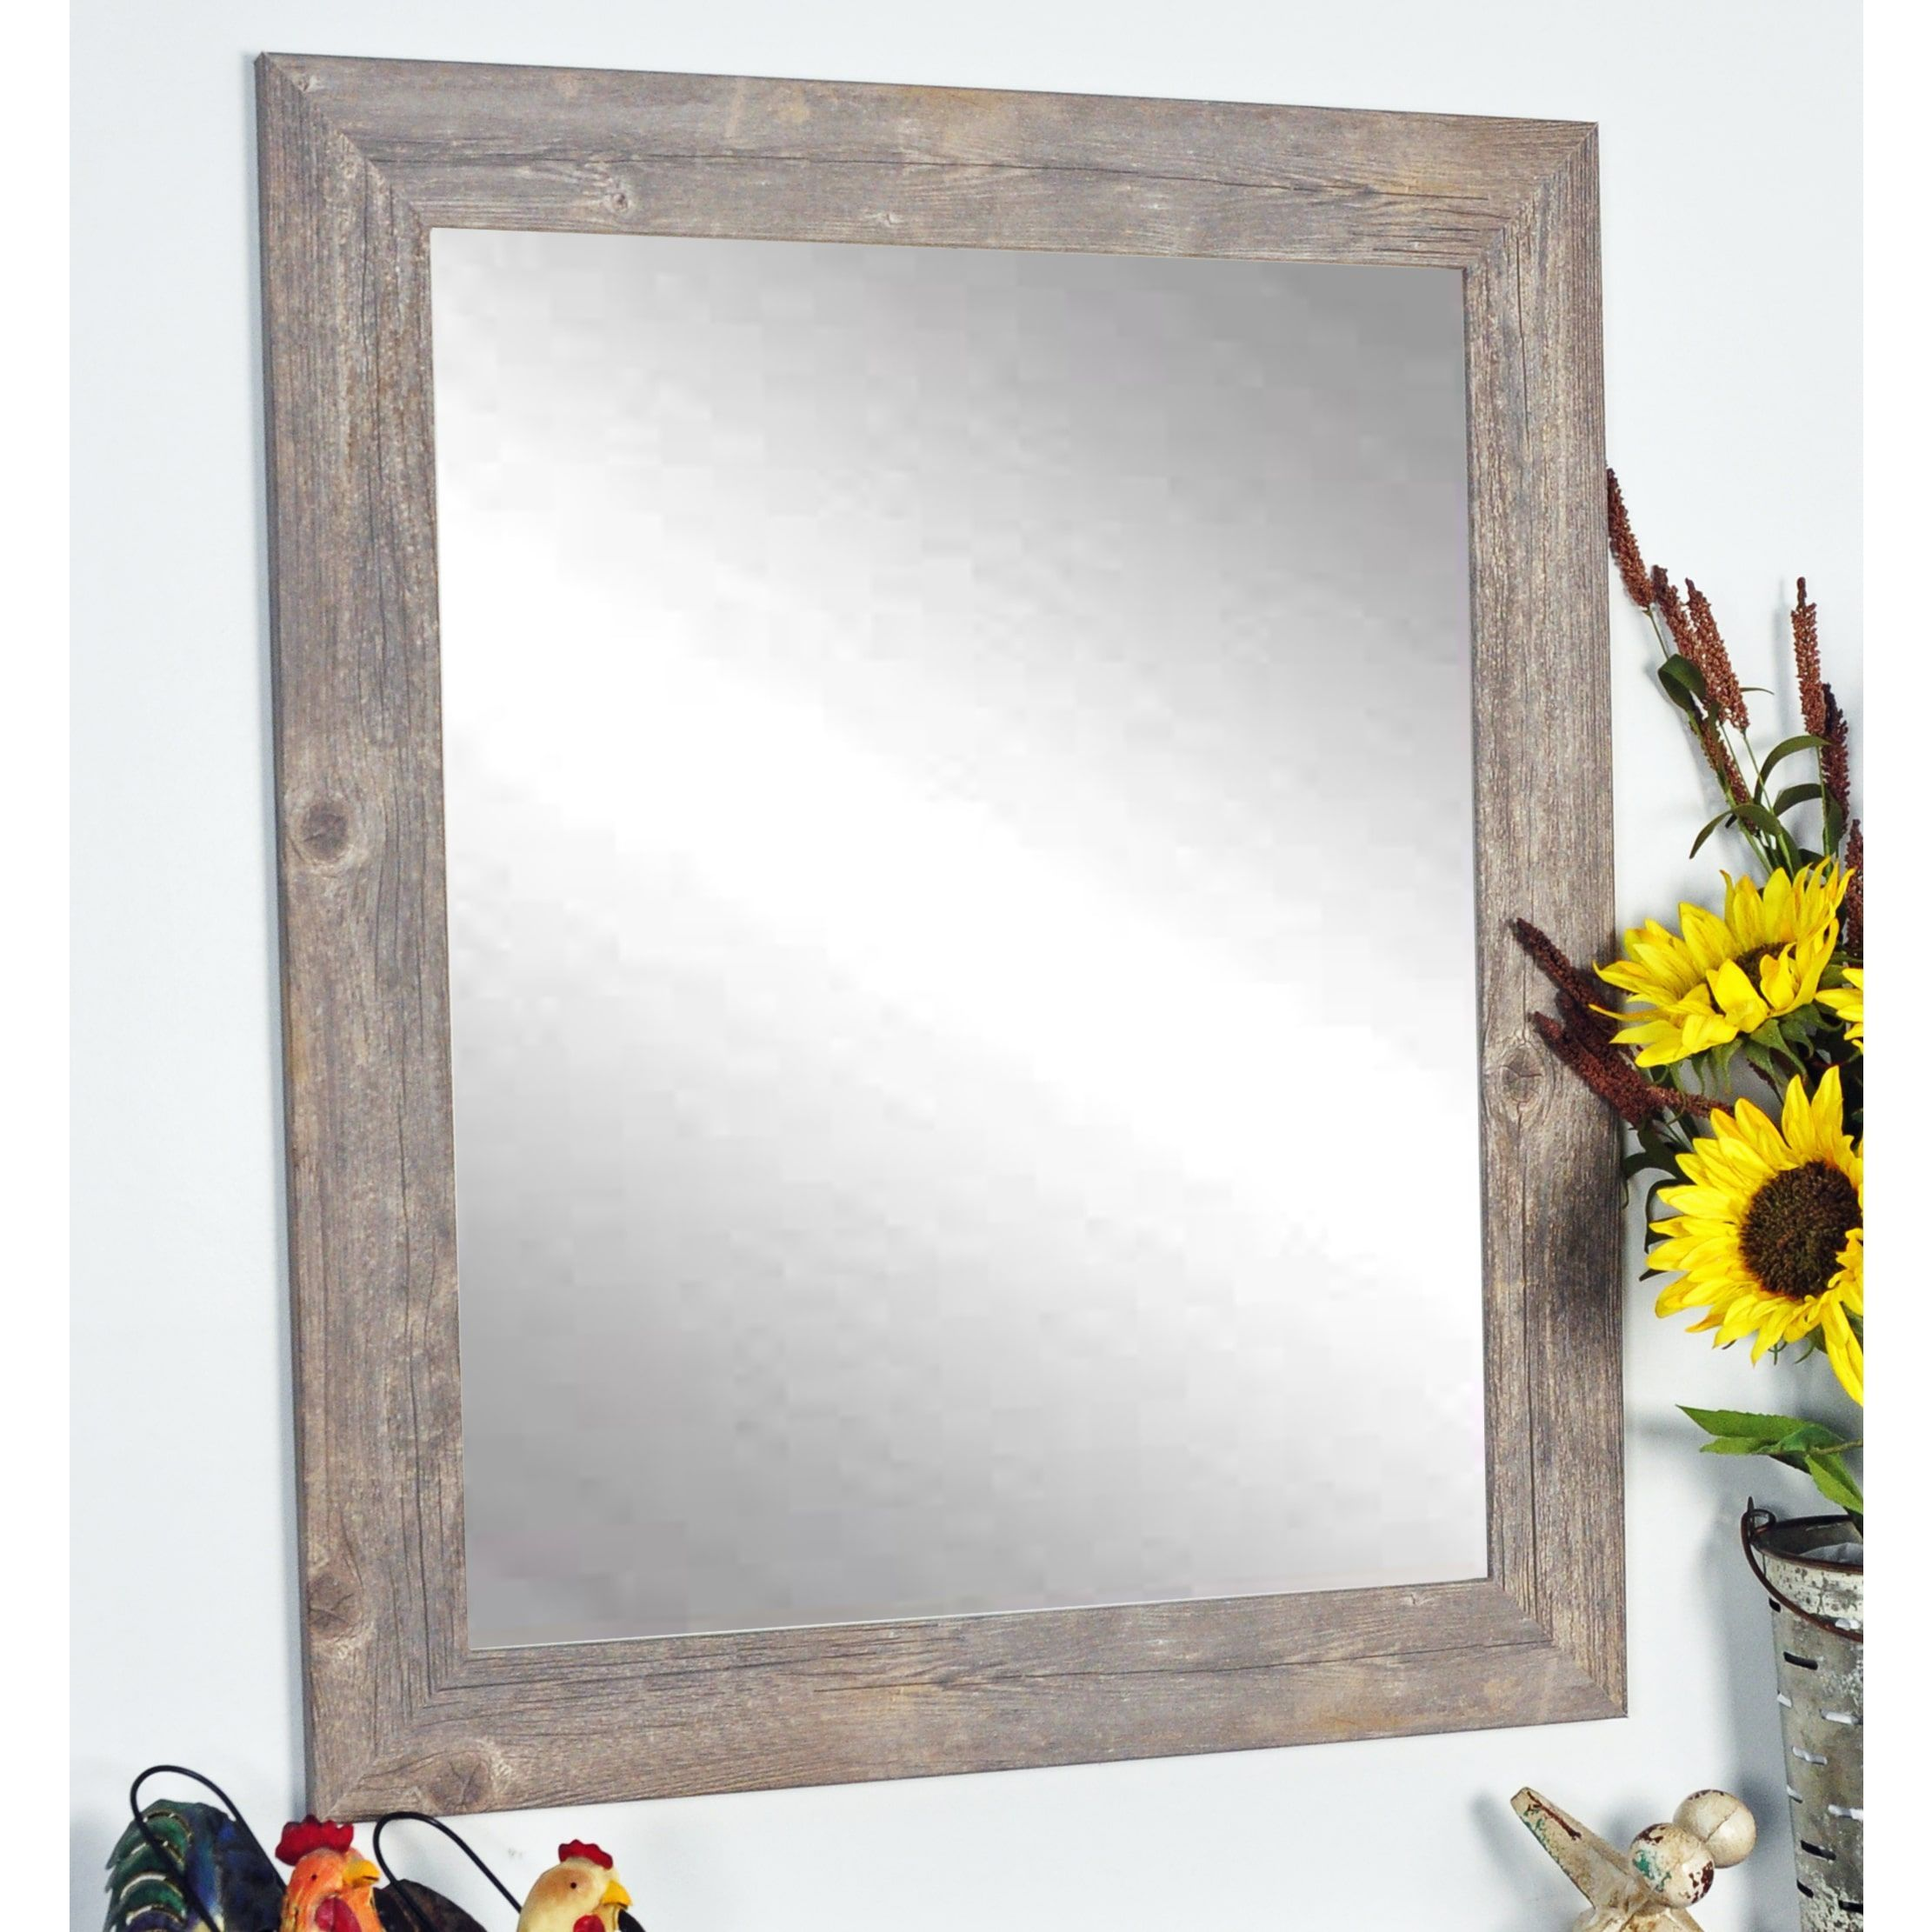 138074f93144d Multi Size Rustic Wild West Brown Barnwood Wall Mirror (21.5 x 32 ...